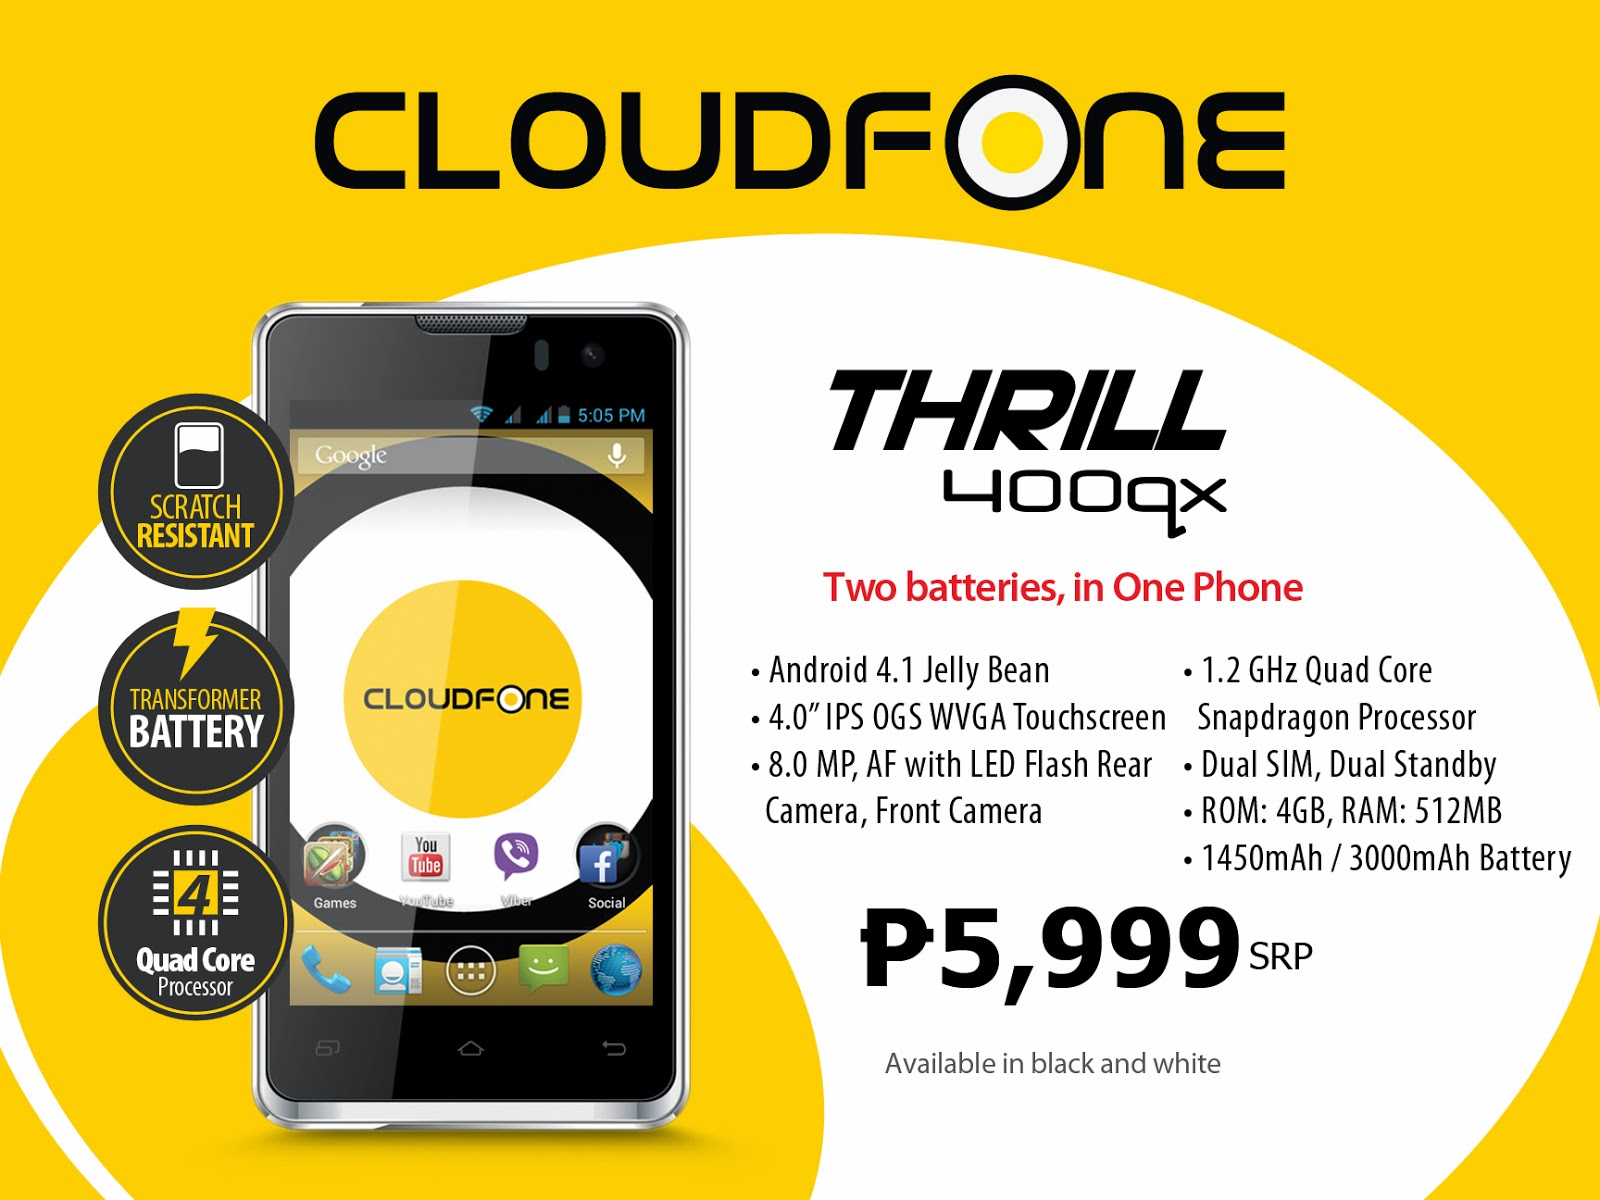 CloudFone Thrill 400qx Specs Price Philippines